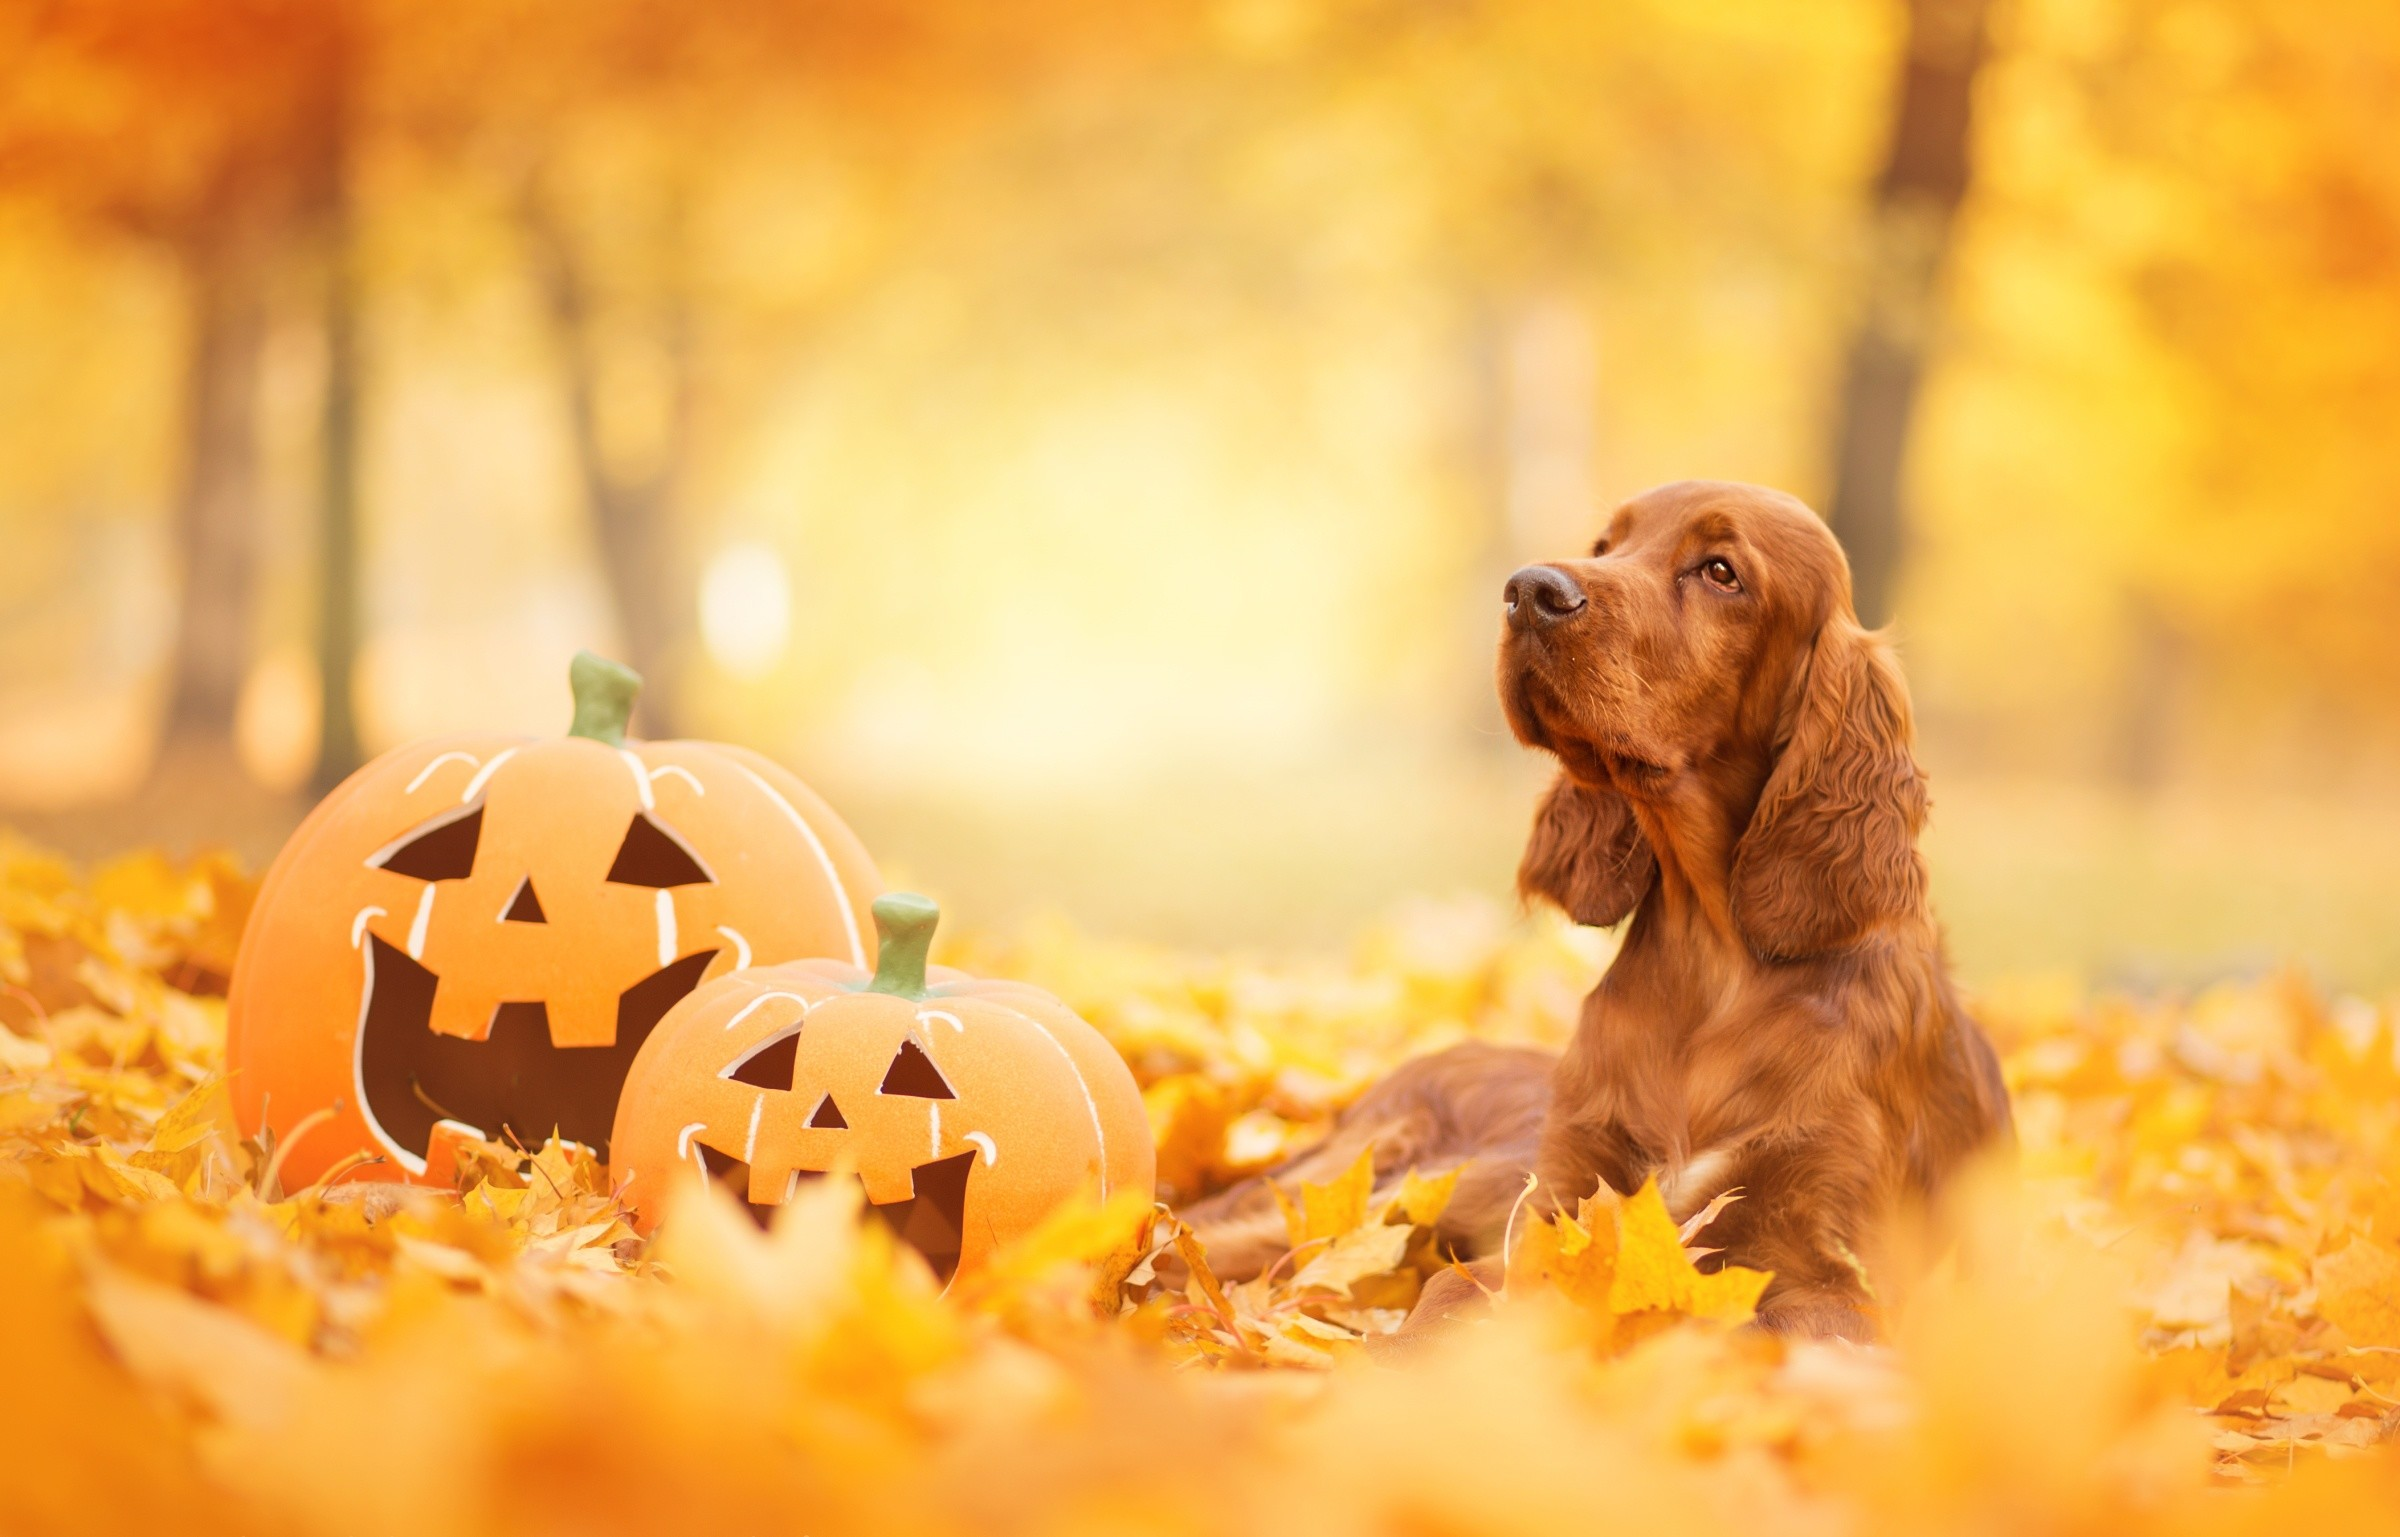 2400x1537 Animal - Cocker Spaniel Fall Pumpkin Spaniel Dog Pet Leaf Depth Of Field  Wallpaper